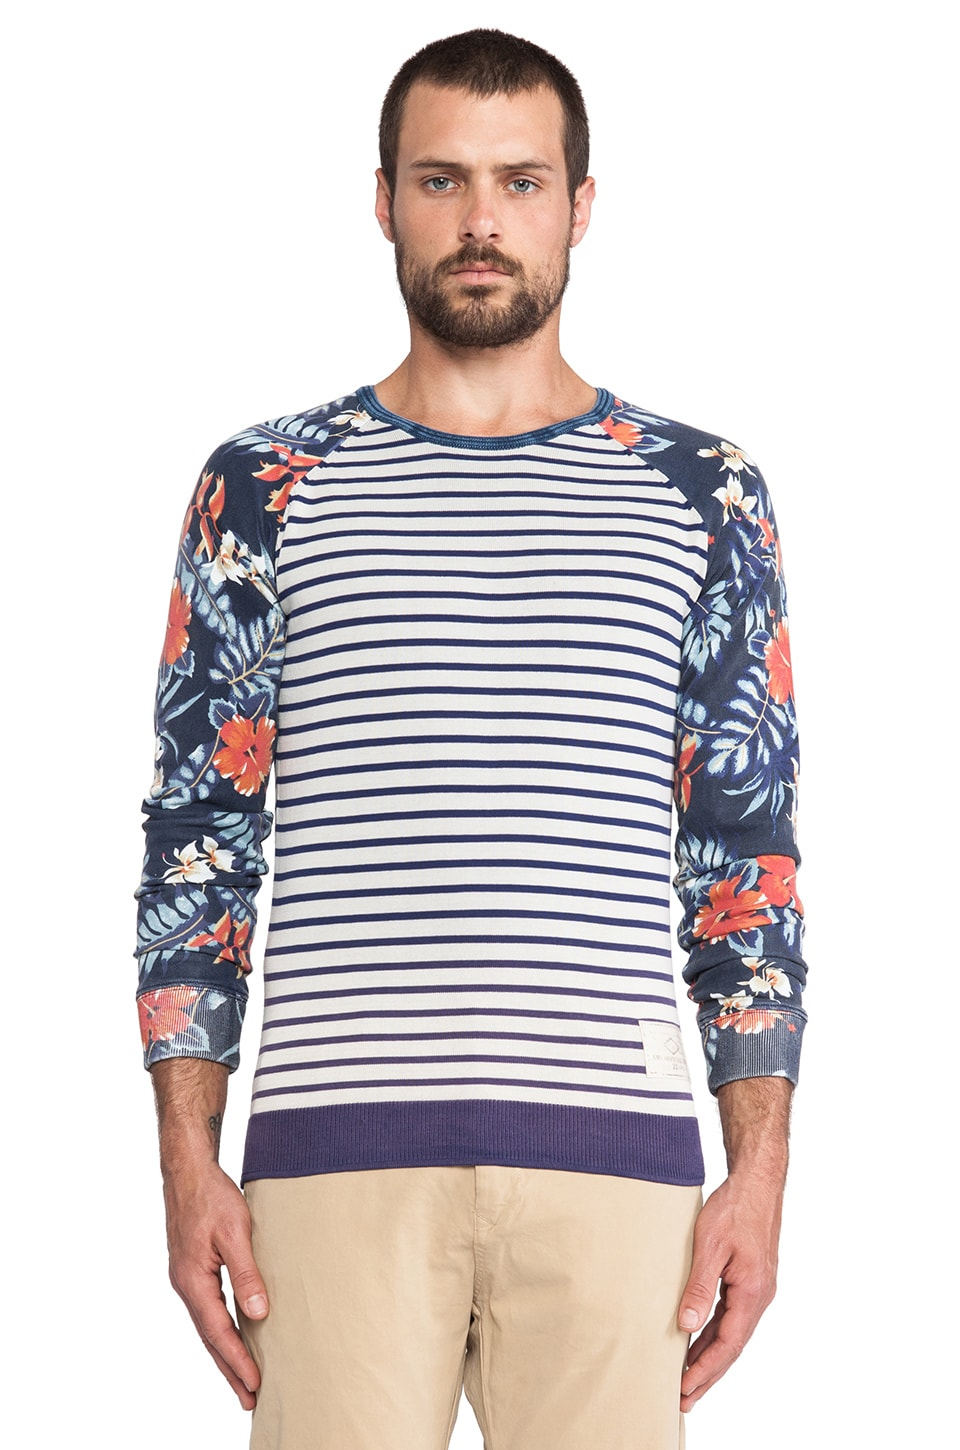 Scotch & Soda Crewneck Pullover w/ Felpa Sleeve in Navy/Multi